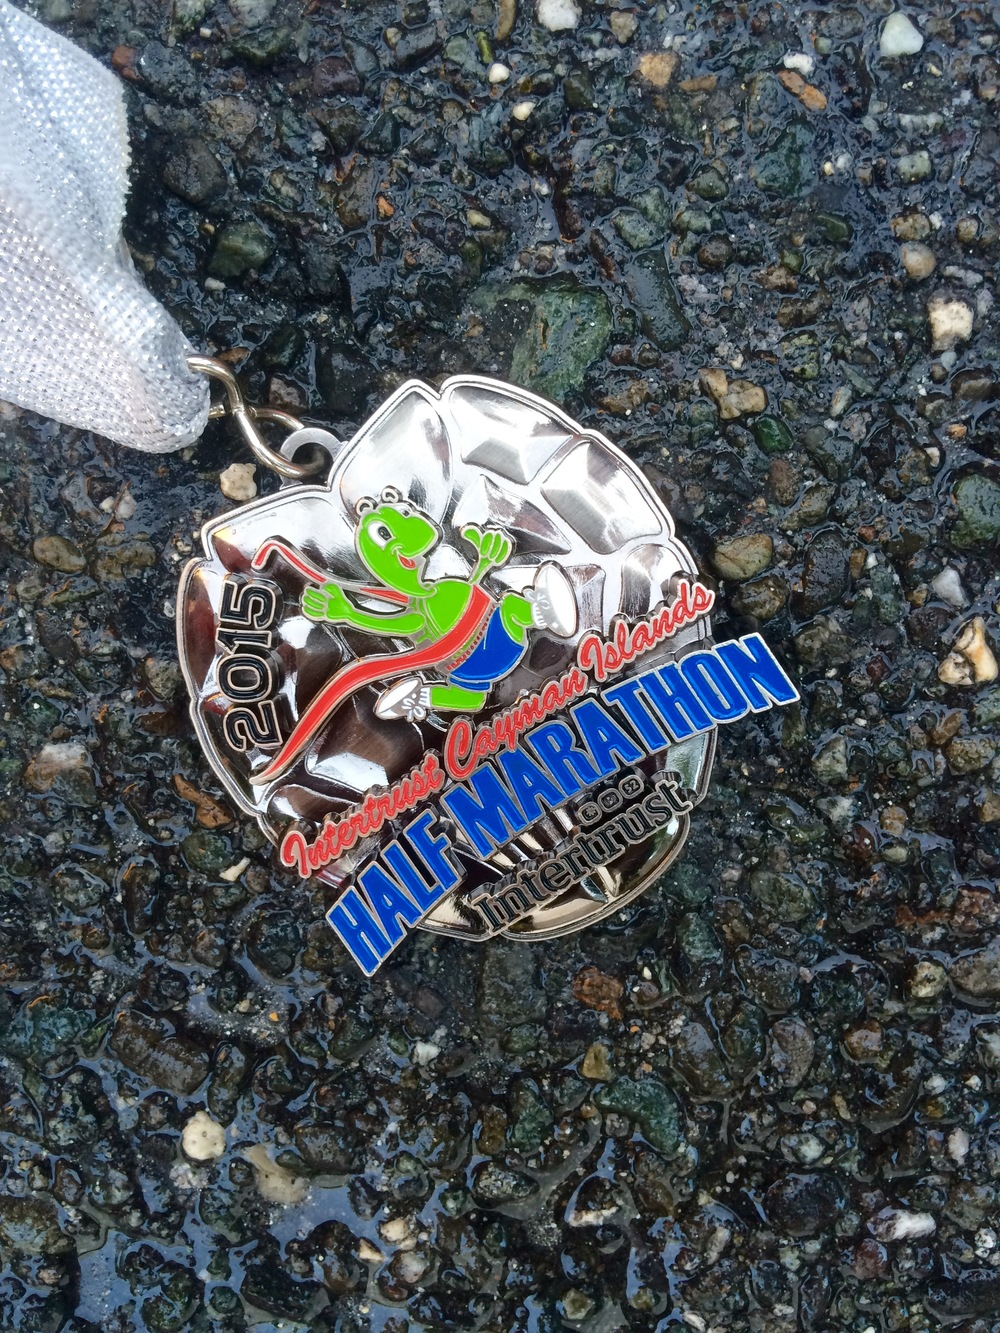 Cayman Islands Half Marathon